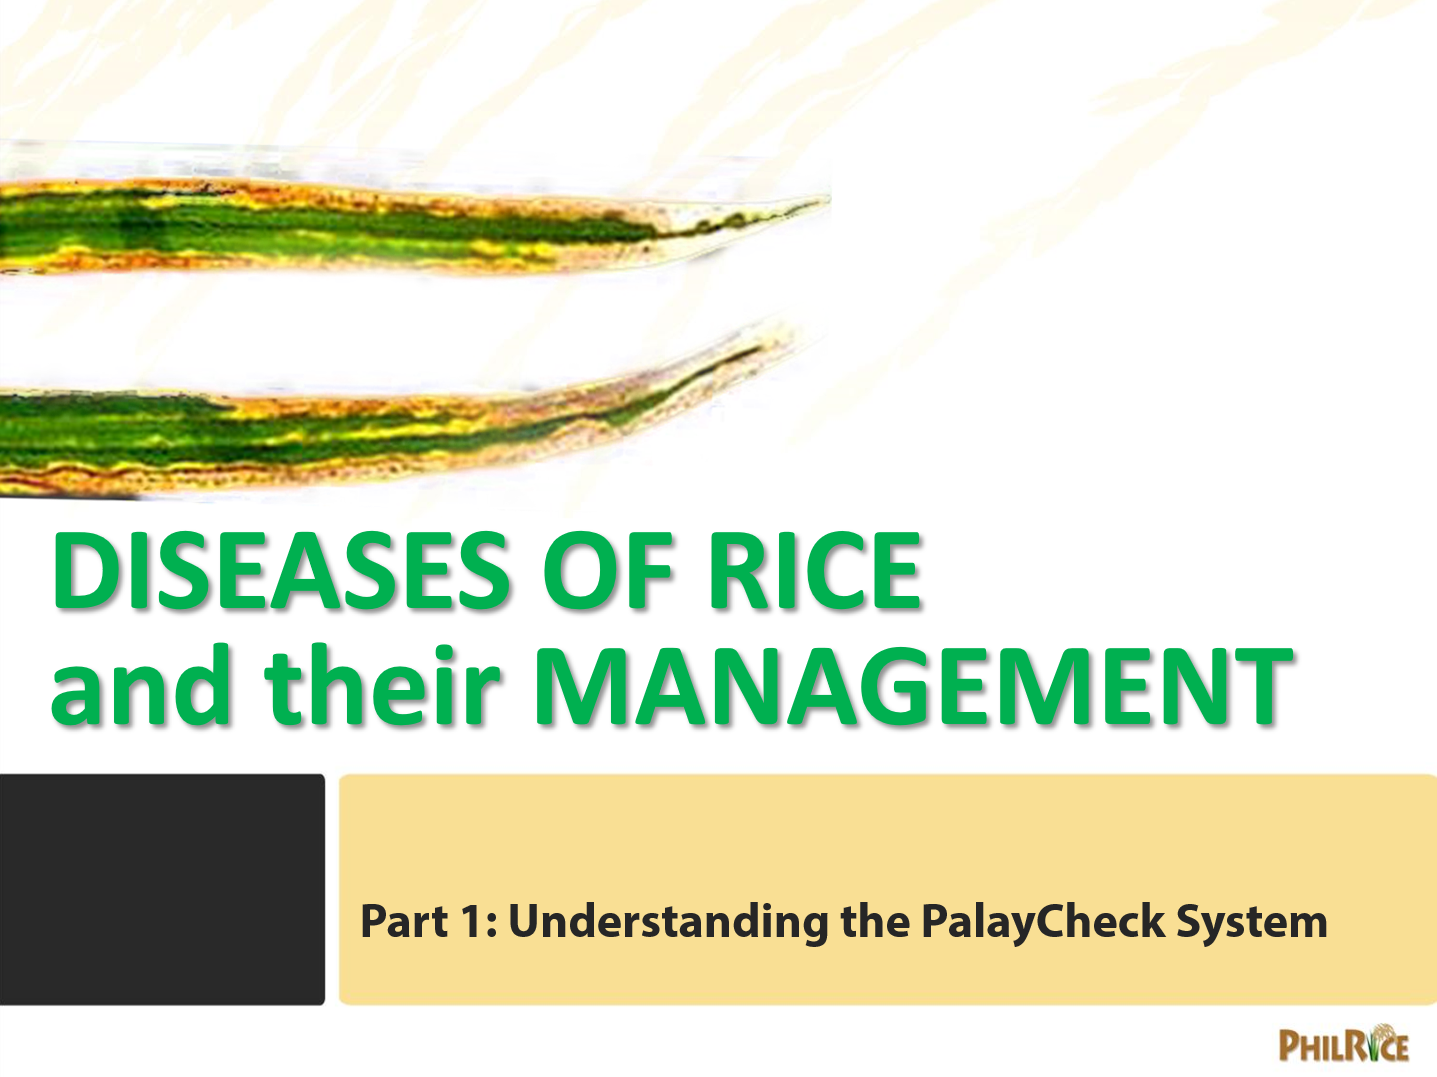 Diseases of rice and their management